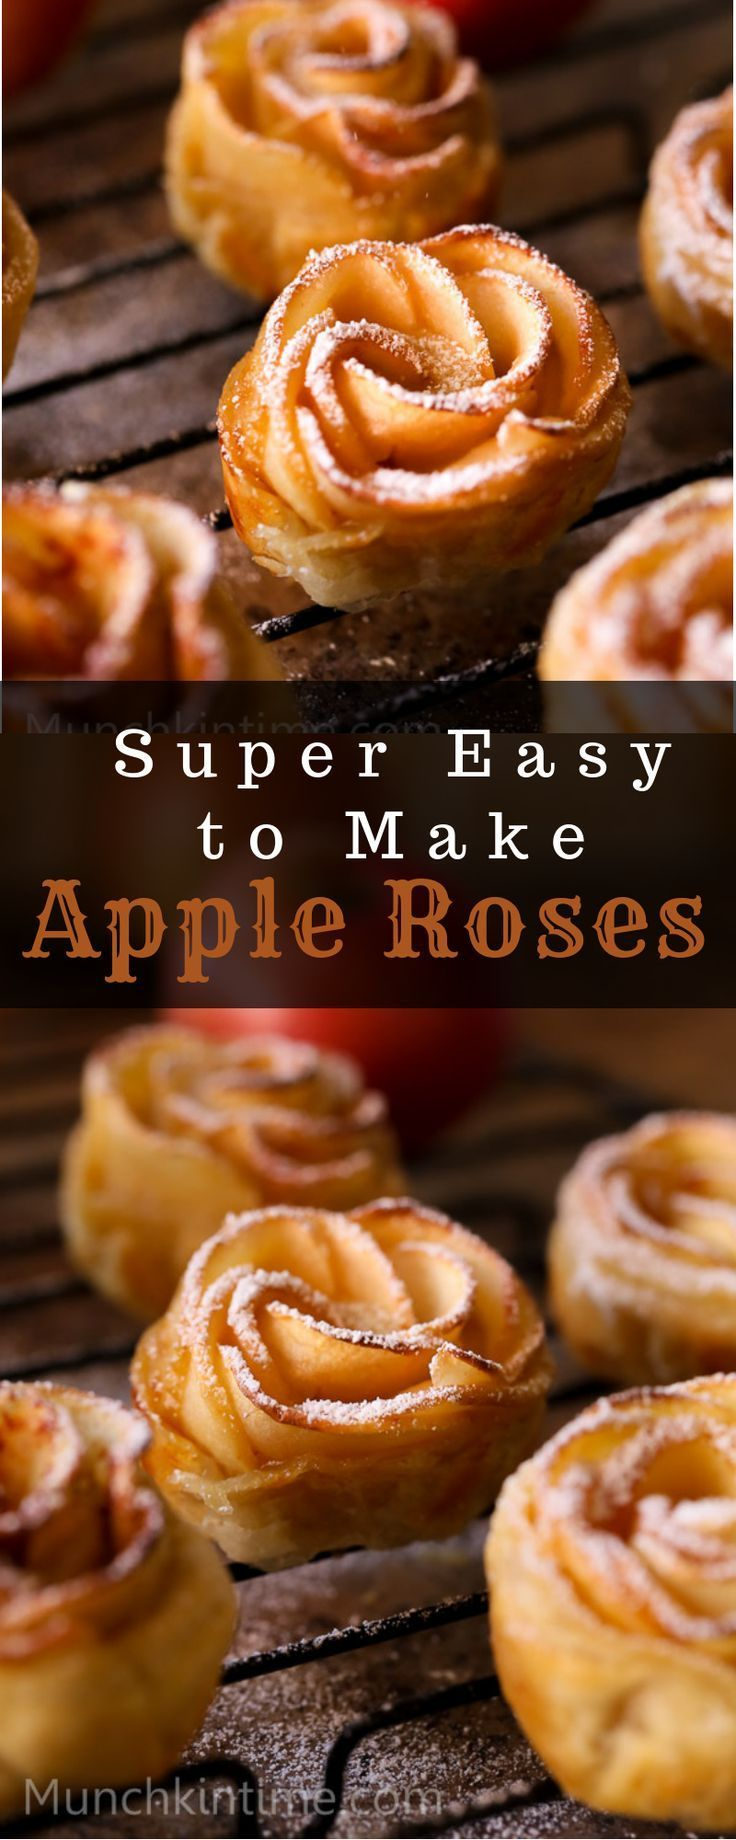 Super Easy Apple Roses Dessert Recipe - Munchkin Time